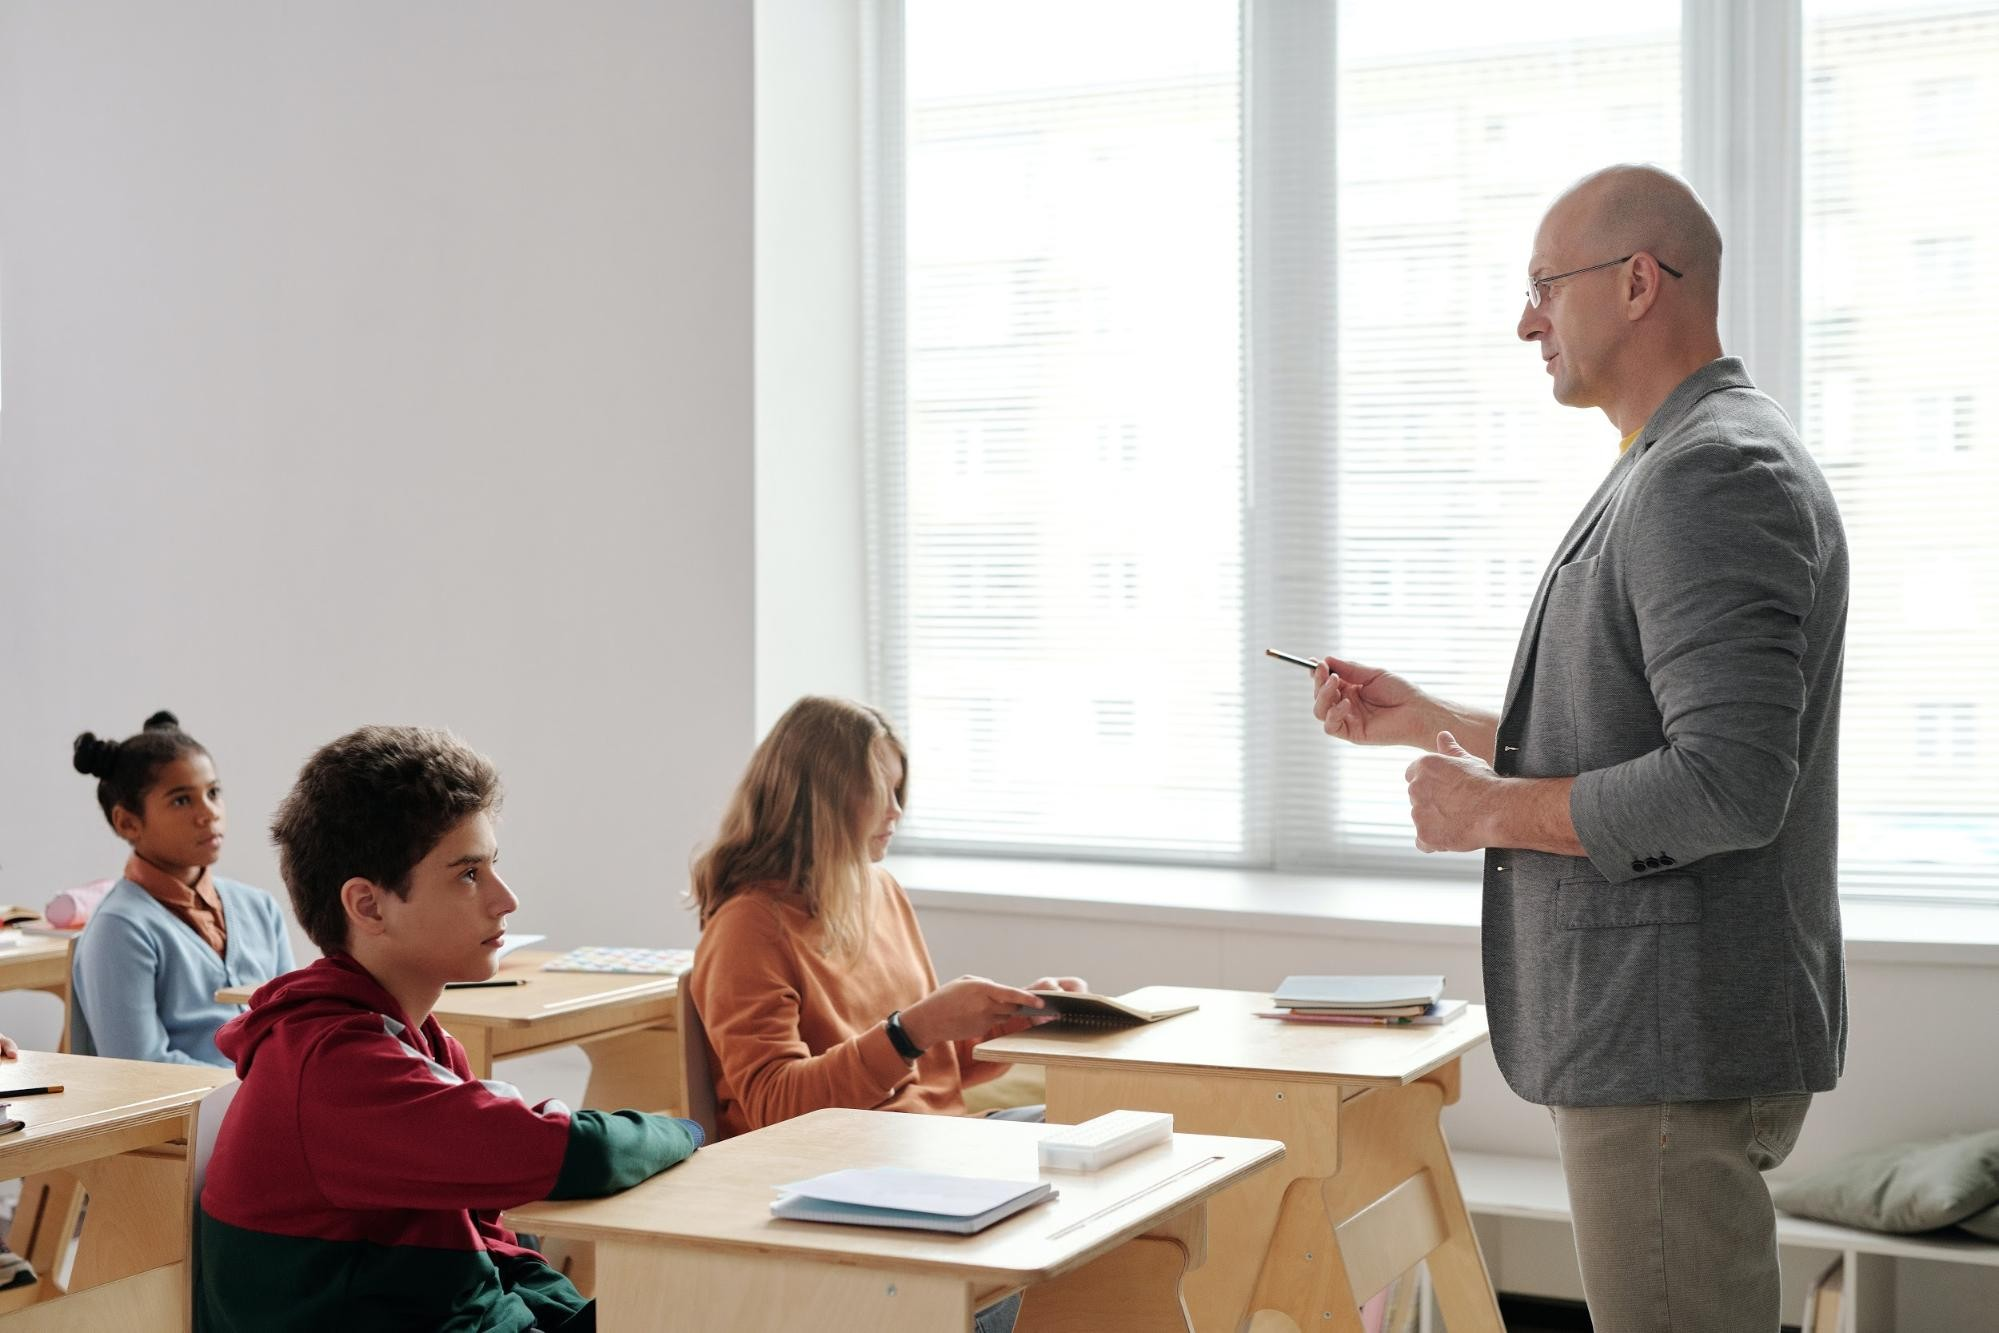 Male teacher in front of students sitting in wooden desks in the classroom.